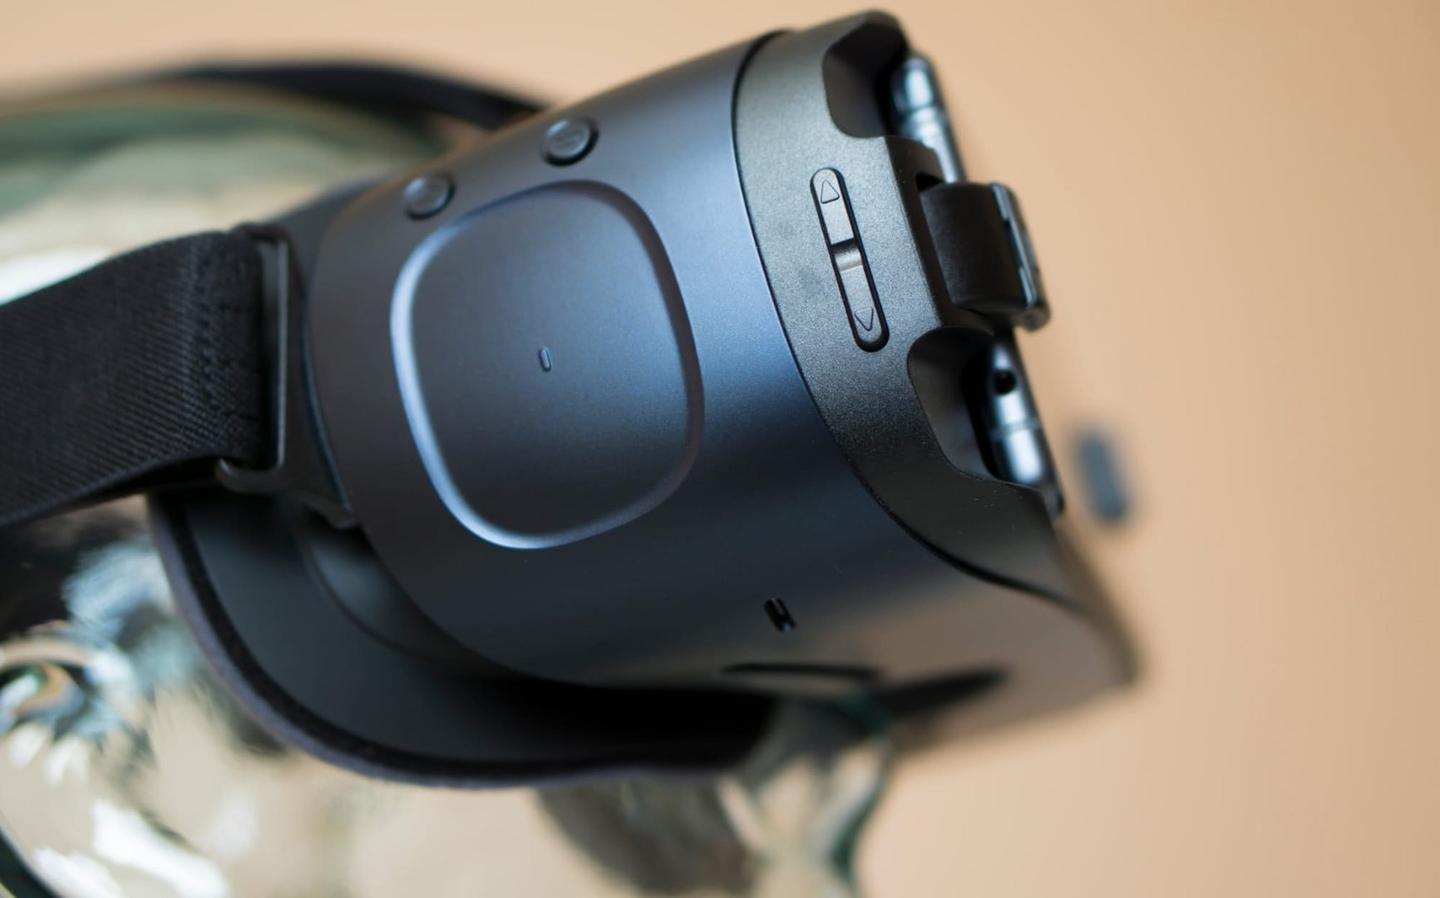 Touchpad on the side of the Gear VR headset